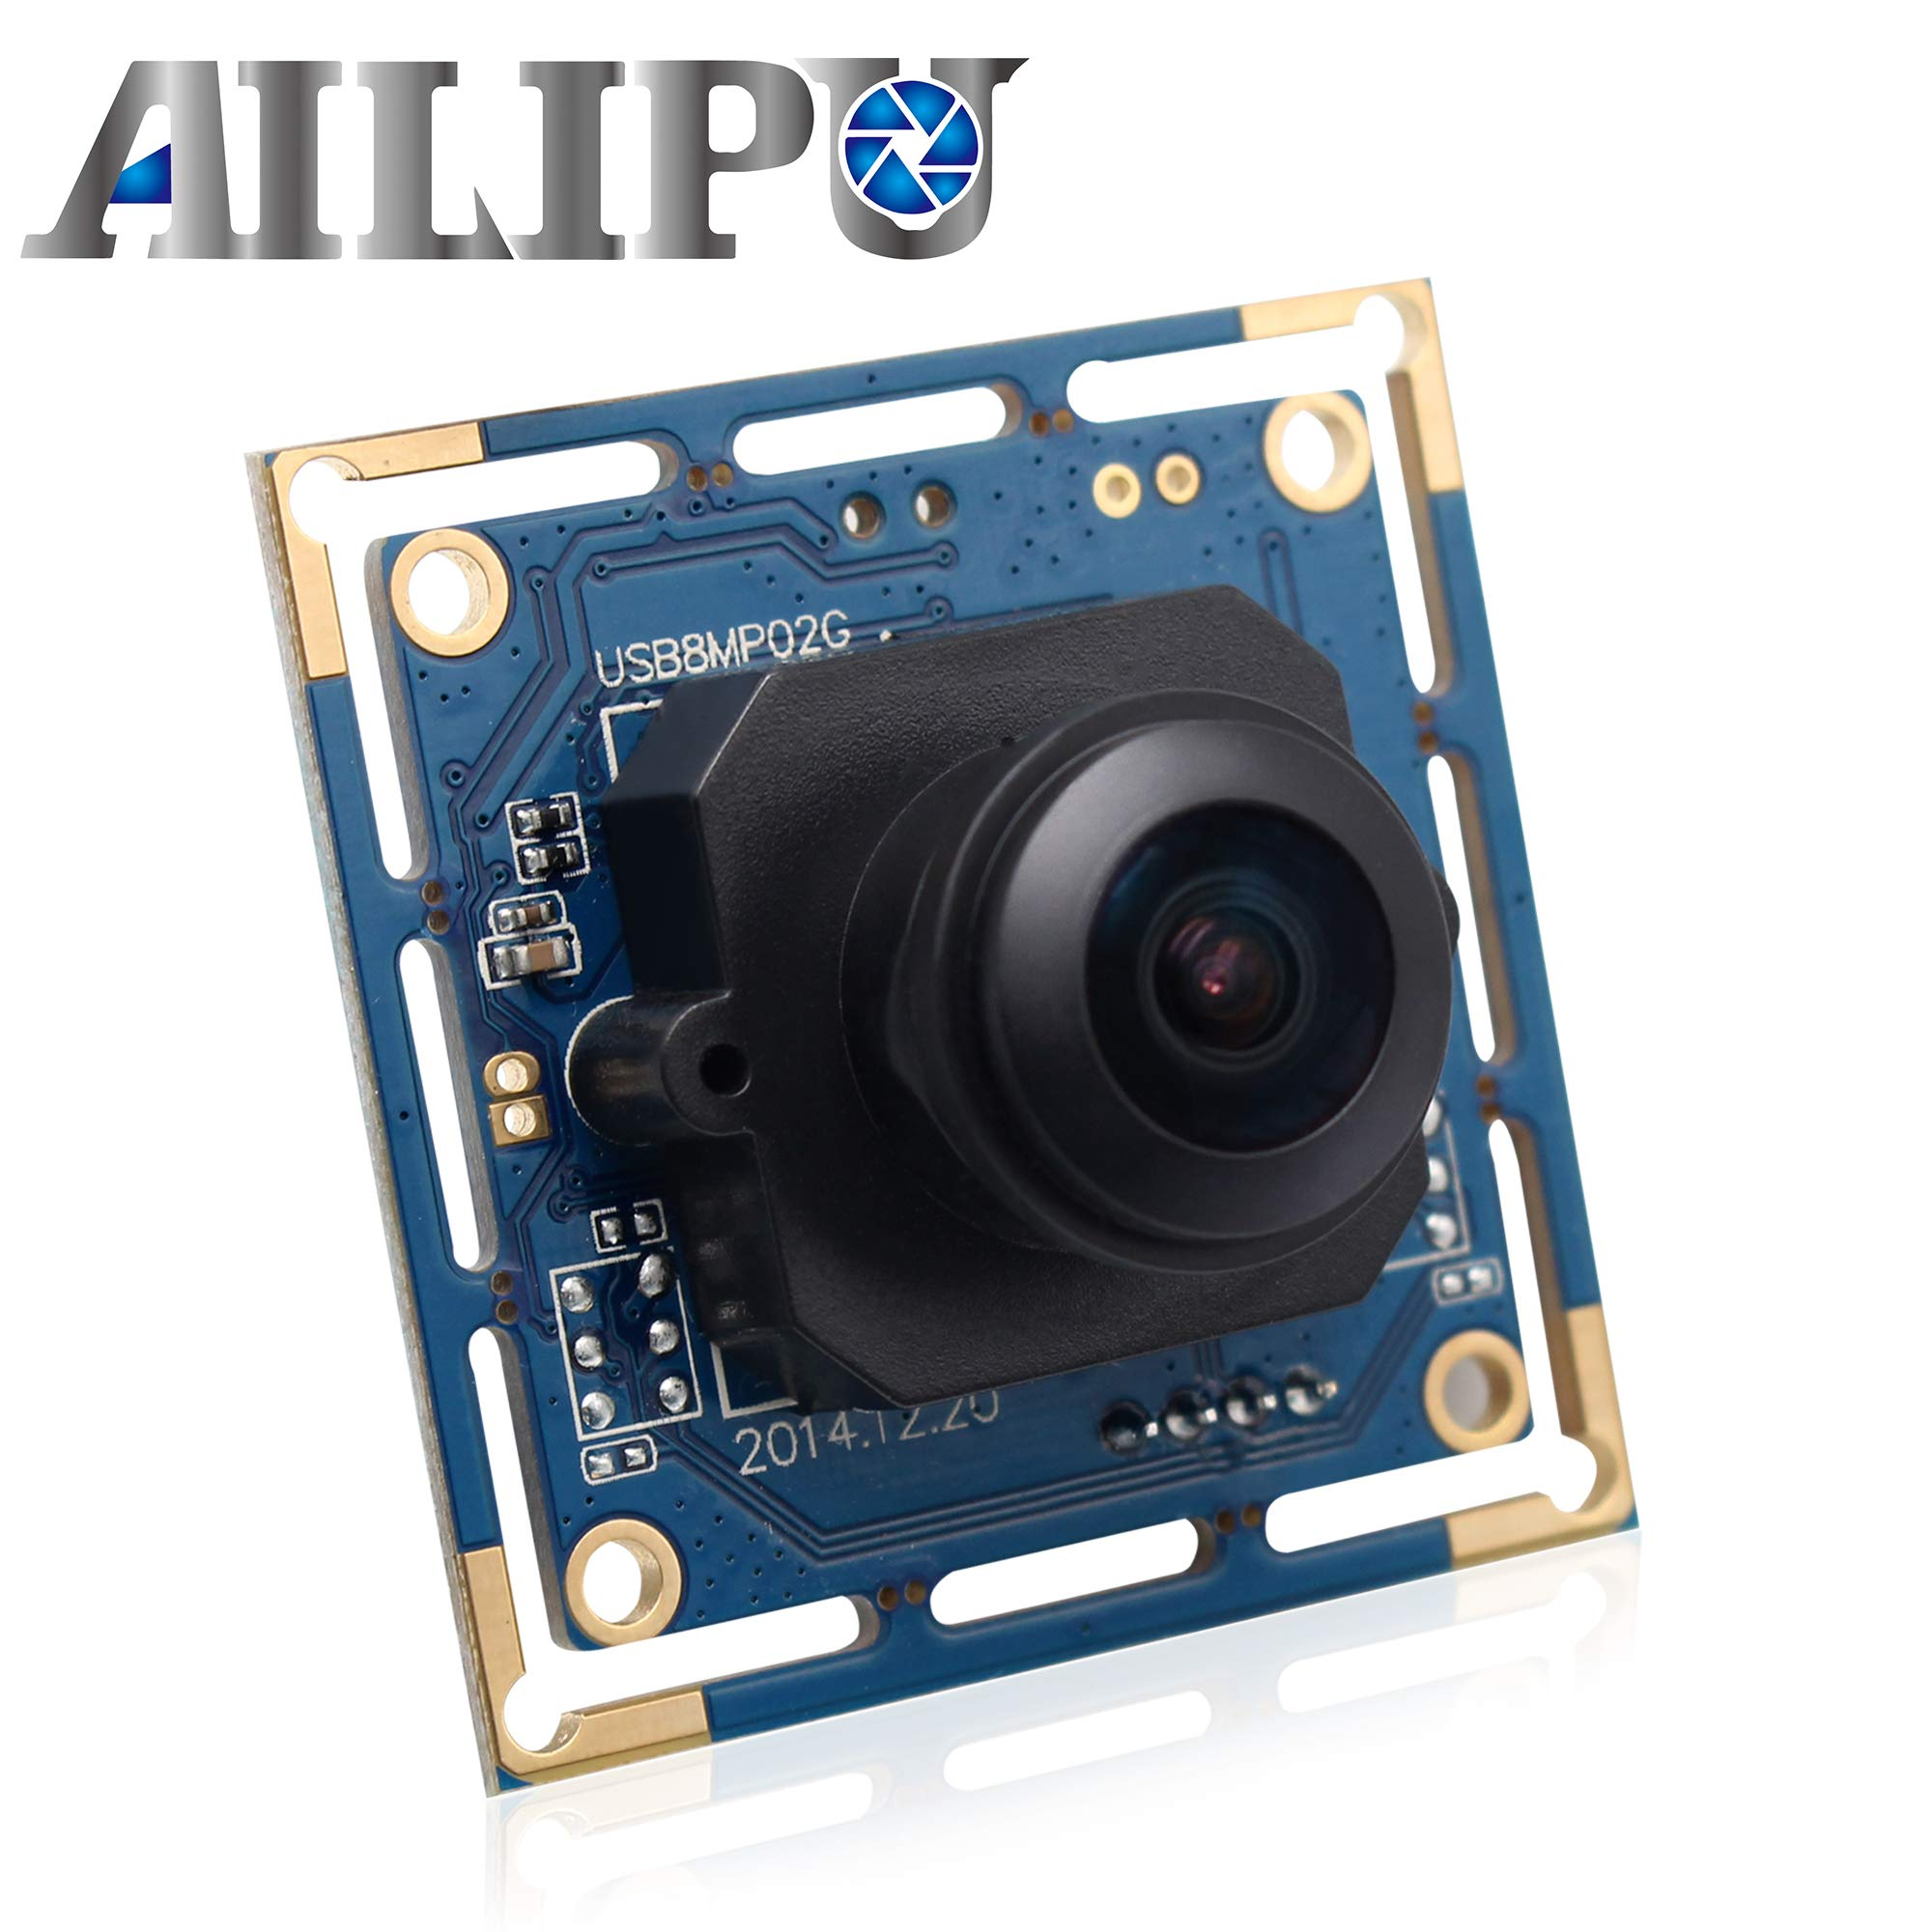 Mini USB Camera Module HD Webcam 8mp Security Camera System Sony IMX179 Industrial Camera for Android Mac Linux Raspberry Pi (180 Degree fisheye Lens)